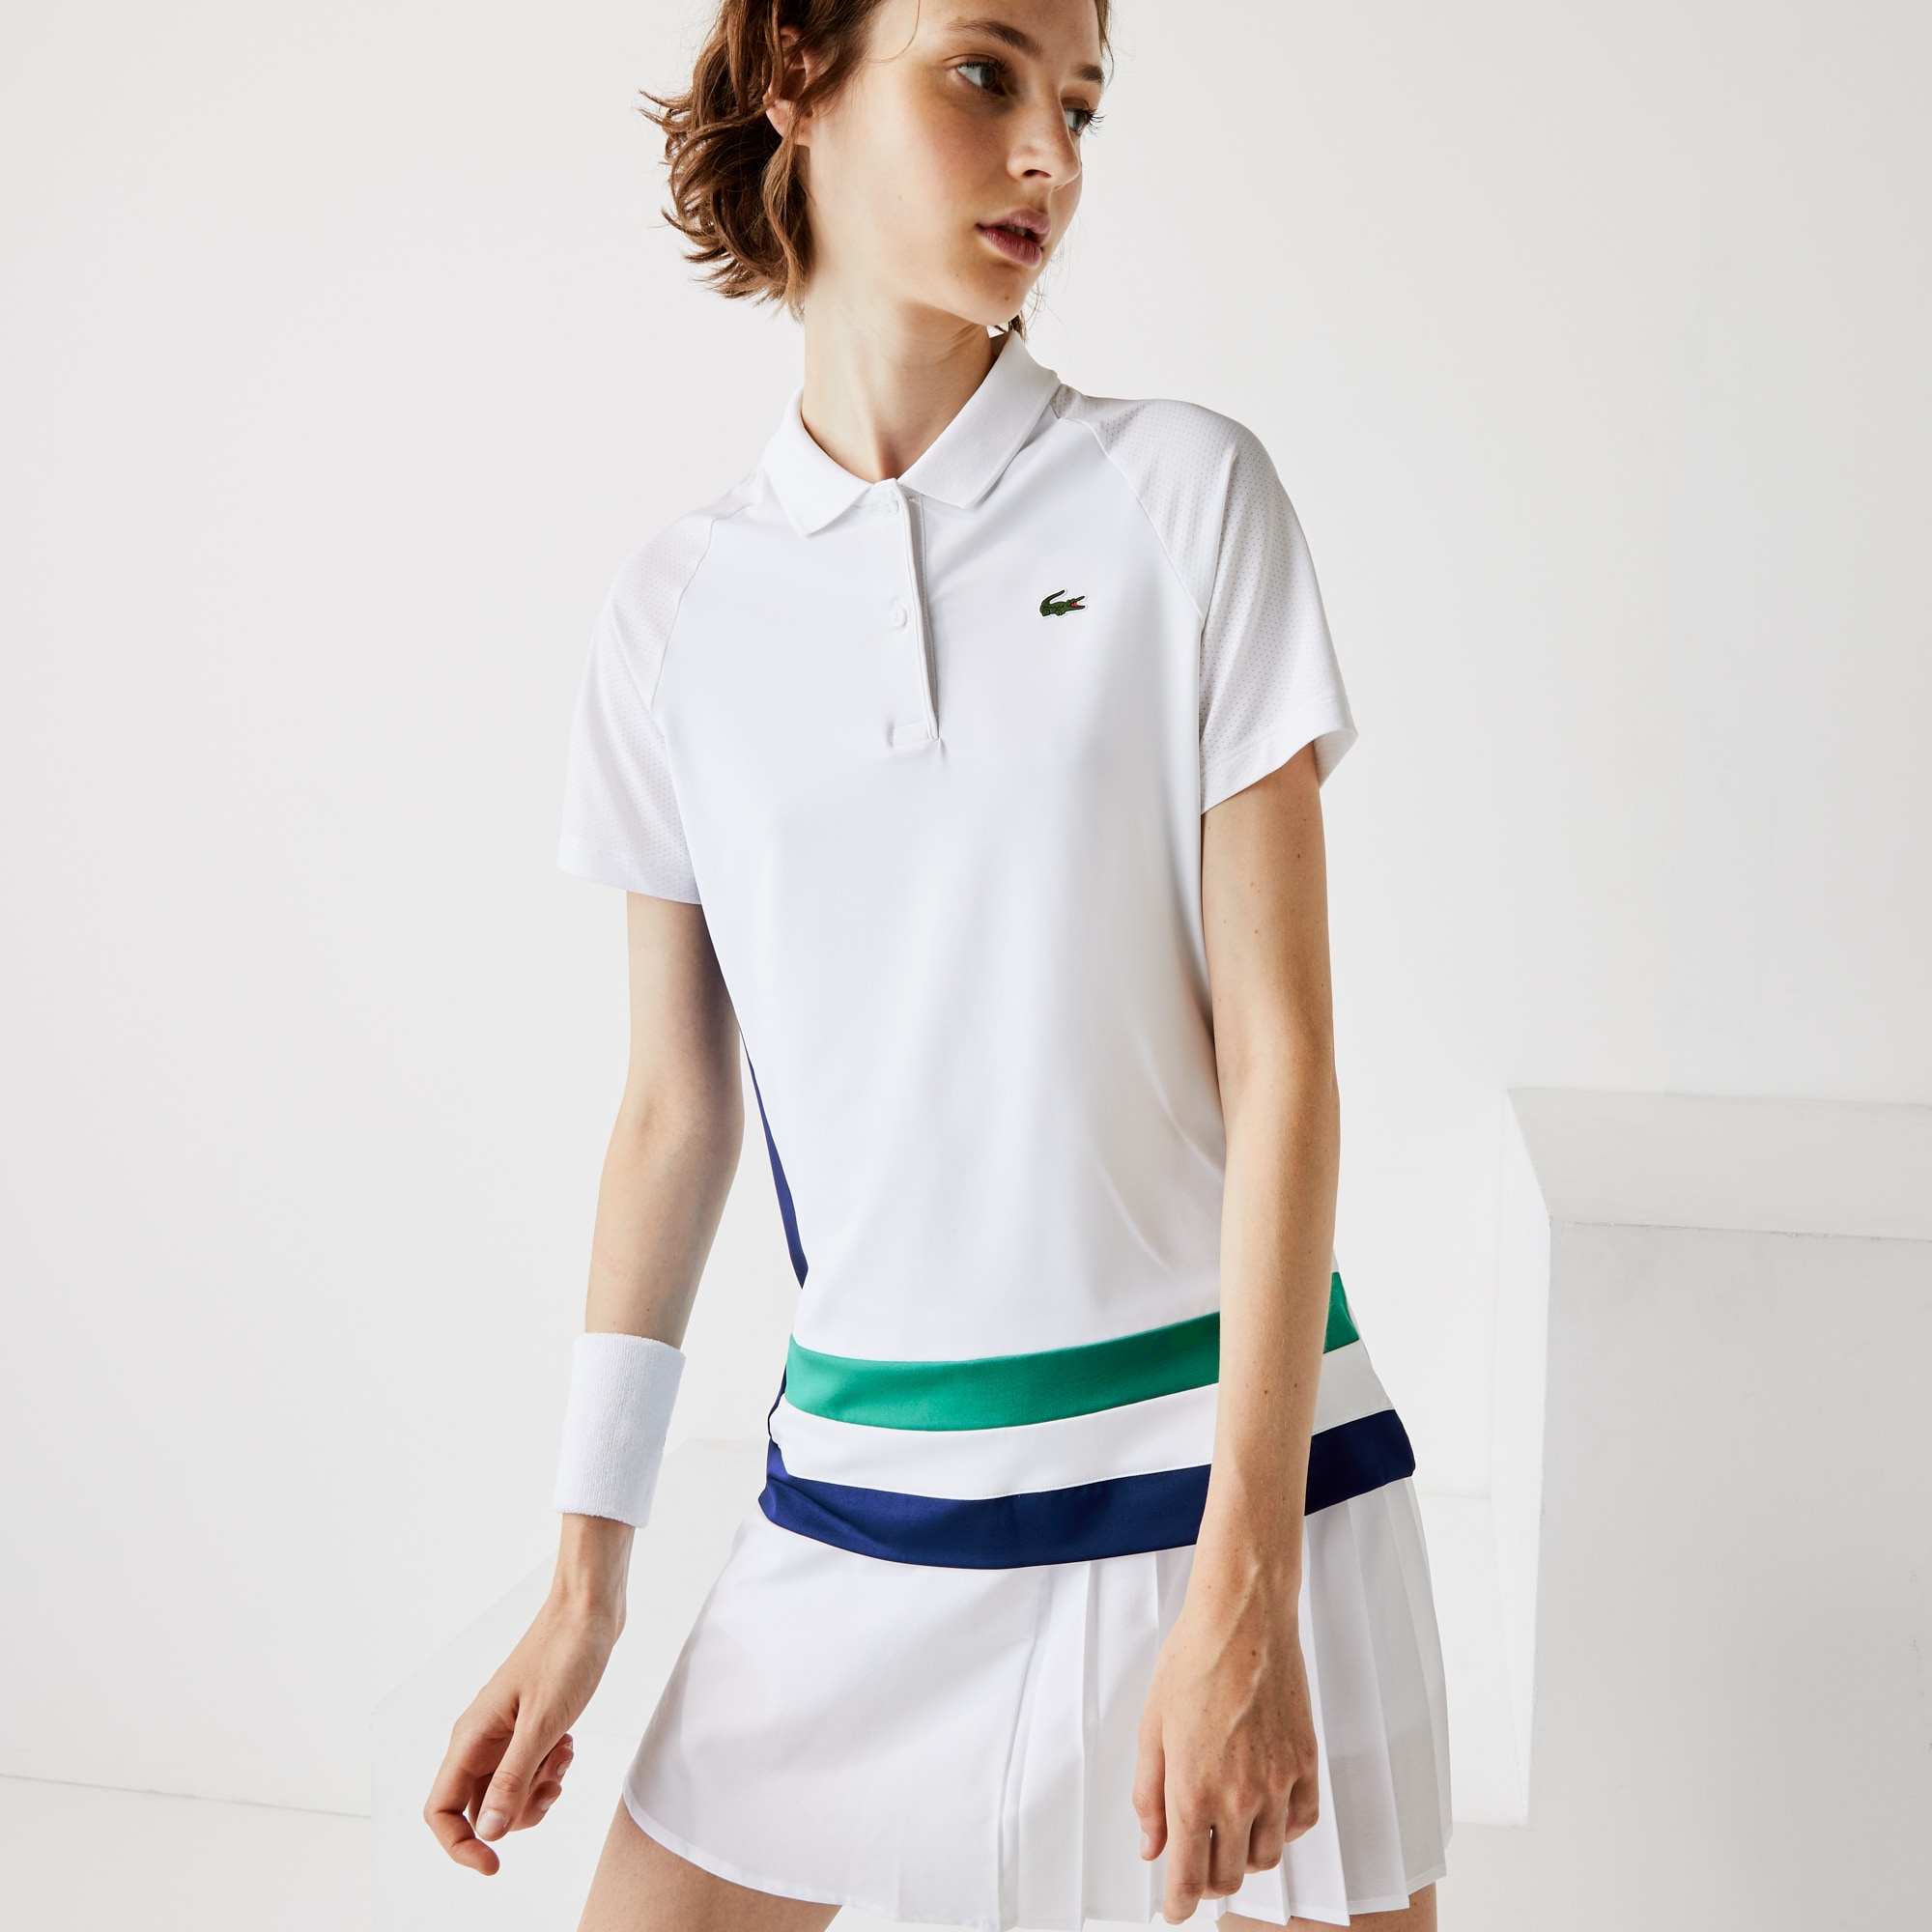 Lacoste Womens SPORT Breathable Stretch Tennis Polo Shirt